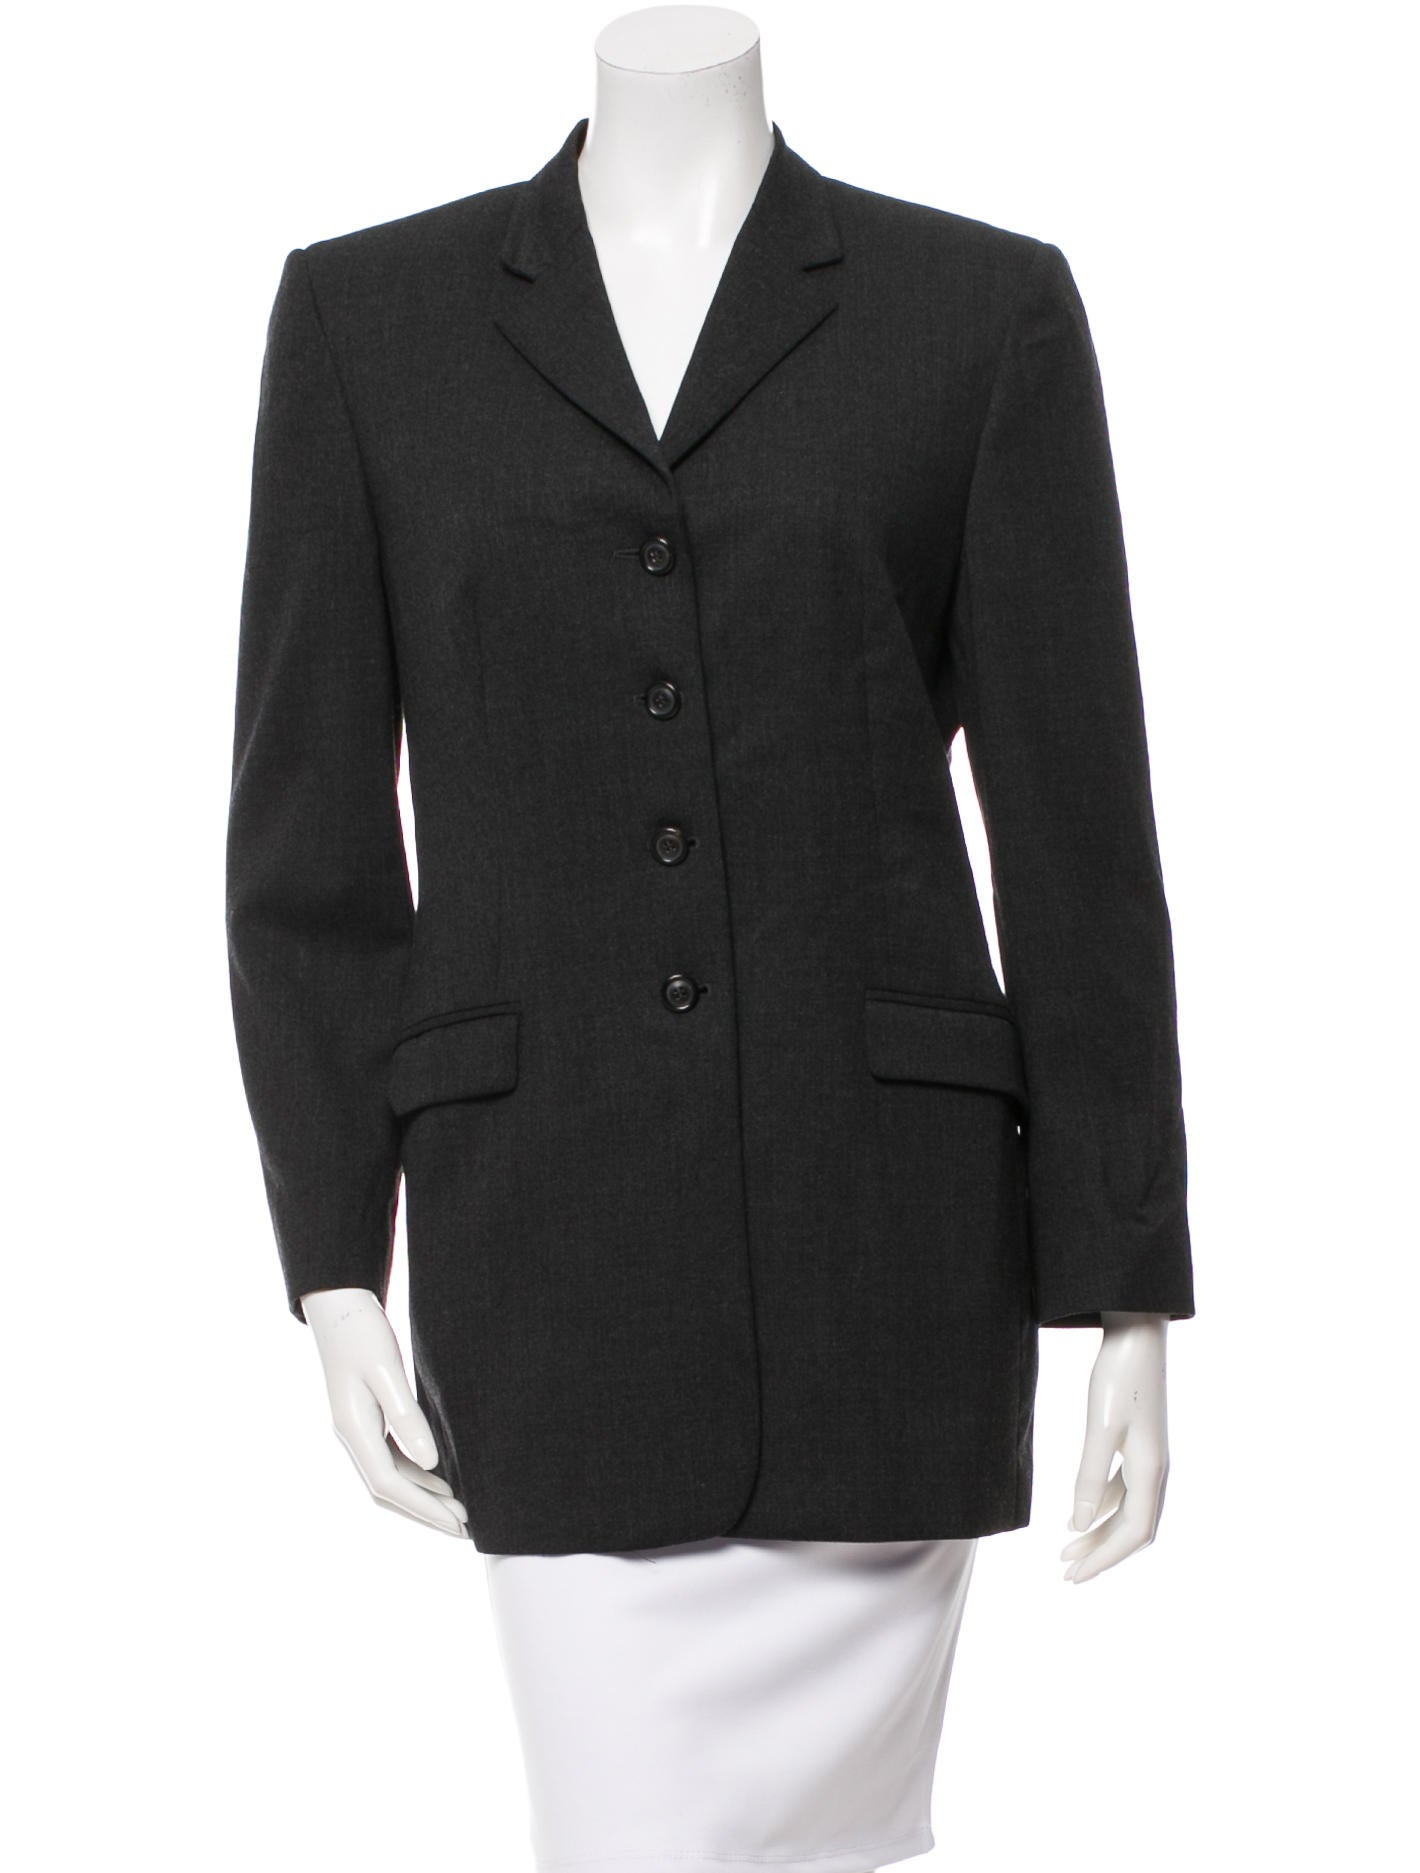 Find great deals on eBay for long wool jacket. Shop with confidence.